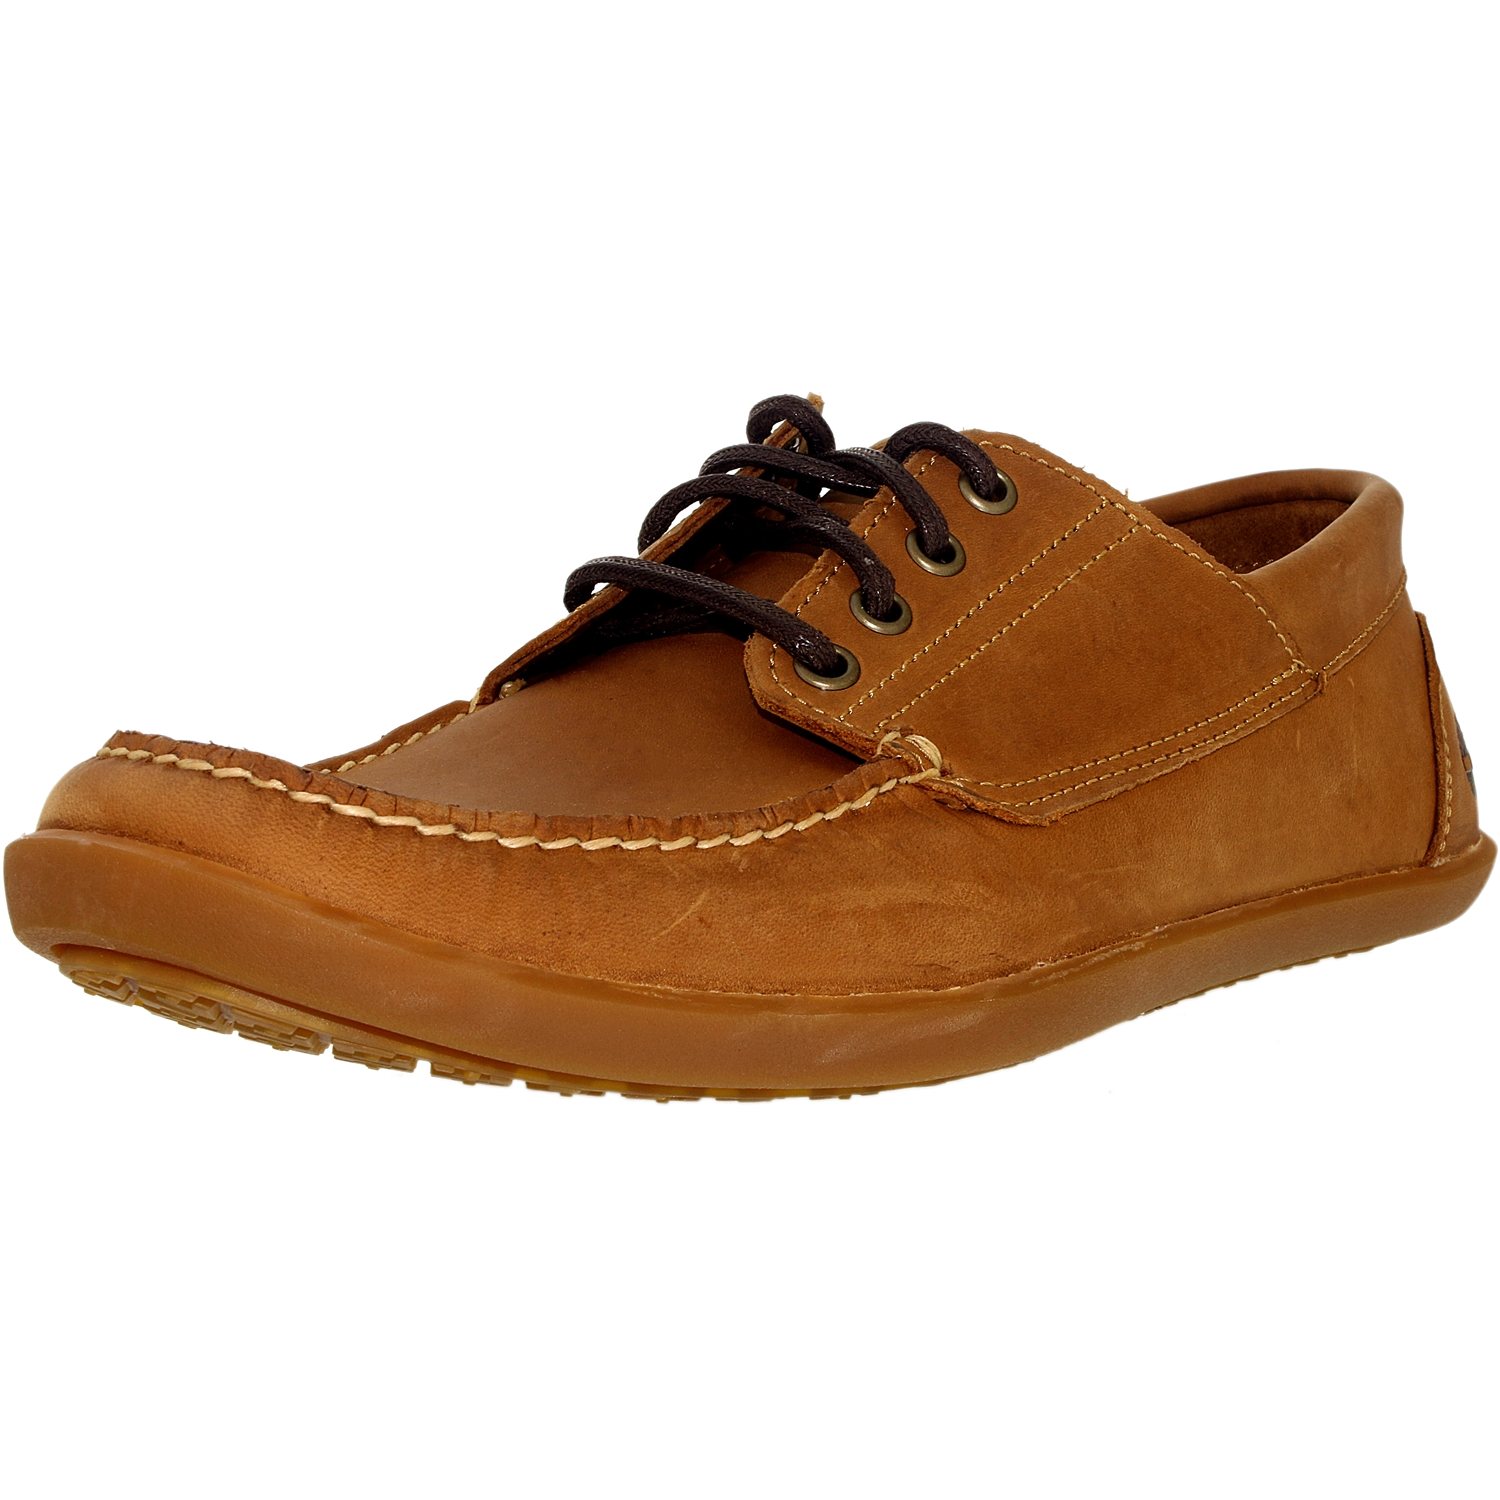 Timberland Men's Odelay 4 Eye Leather Red Brown Ankle-High Oxford Shoe - 10W